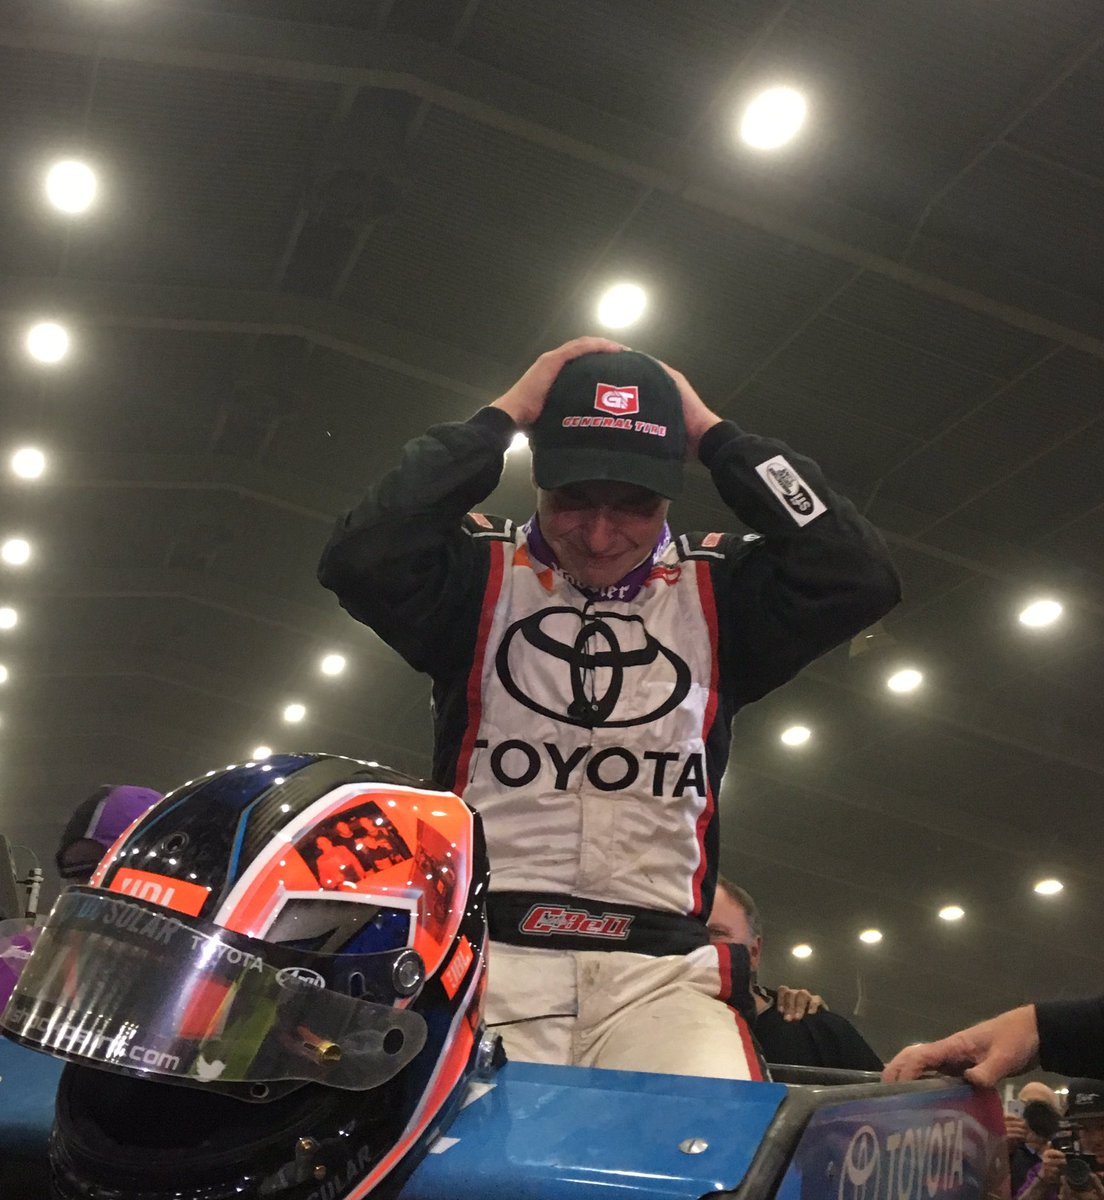 Pure emotion from @cbnationals WINNER @CBellRacing...Congratulations! #ChiliBowl2017 https://t.co/TIPqWPUCBT